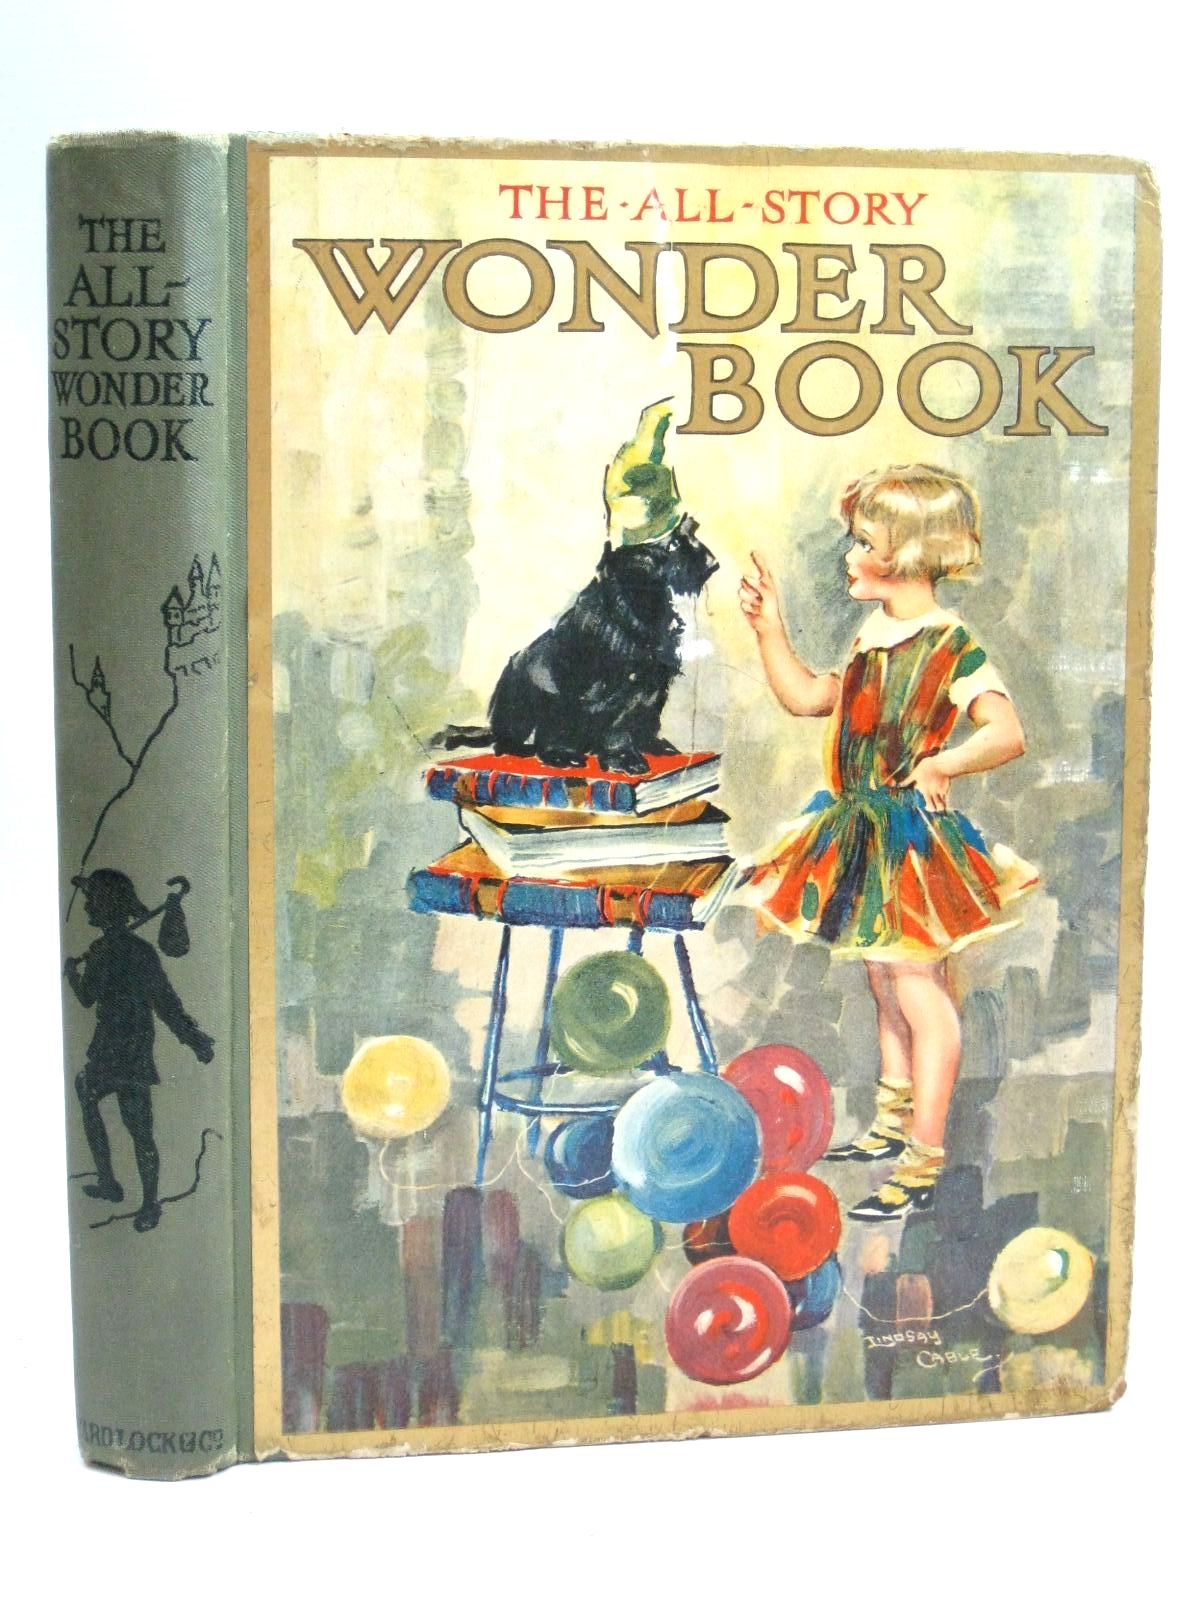 Photo of THE ALL-STORY WONDER BOOK 24TH YEAR written by Golding, Harry<br />Collier, Madeleine<br />Chaundler, Christine<br />Brisley, Nina K.<br />Talbot, Ethel<br />et al, illustrated by Cable, W. Lindsay<br />Tarrant, Percy<br />Theaker, Harry G.<br />Adams, Frank<br />Wright, Alan<br />et al., published by Ward, Lock & Co. Limited (STOCK CODE: 1506003)  for sale by Stella & Rose's Books